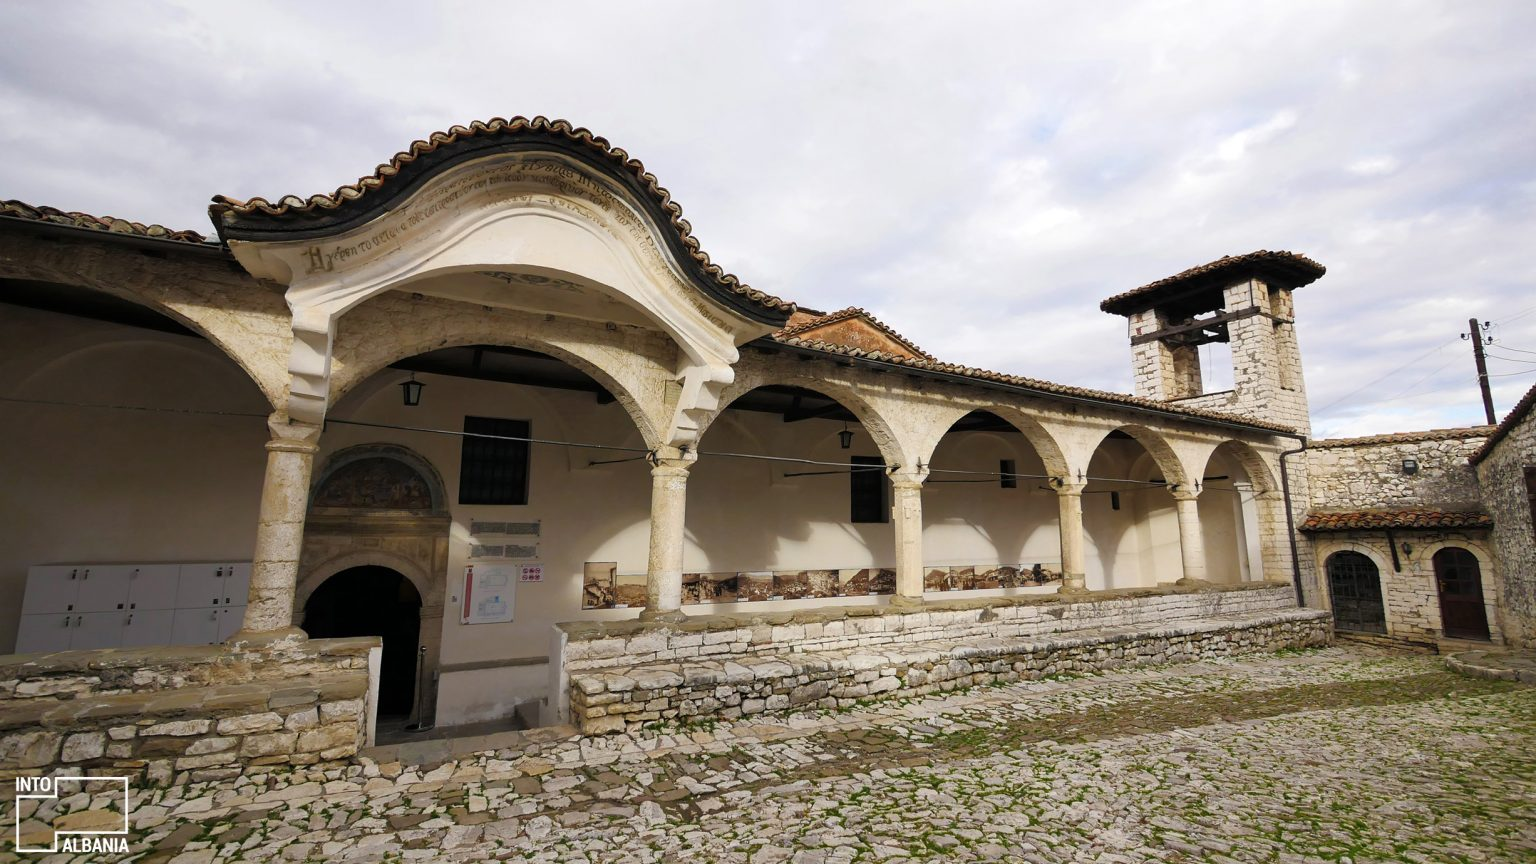 Onufri Museum, Berat, photo by IntoAlbania.